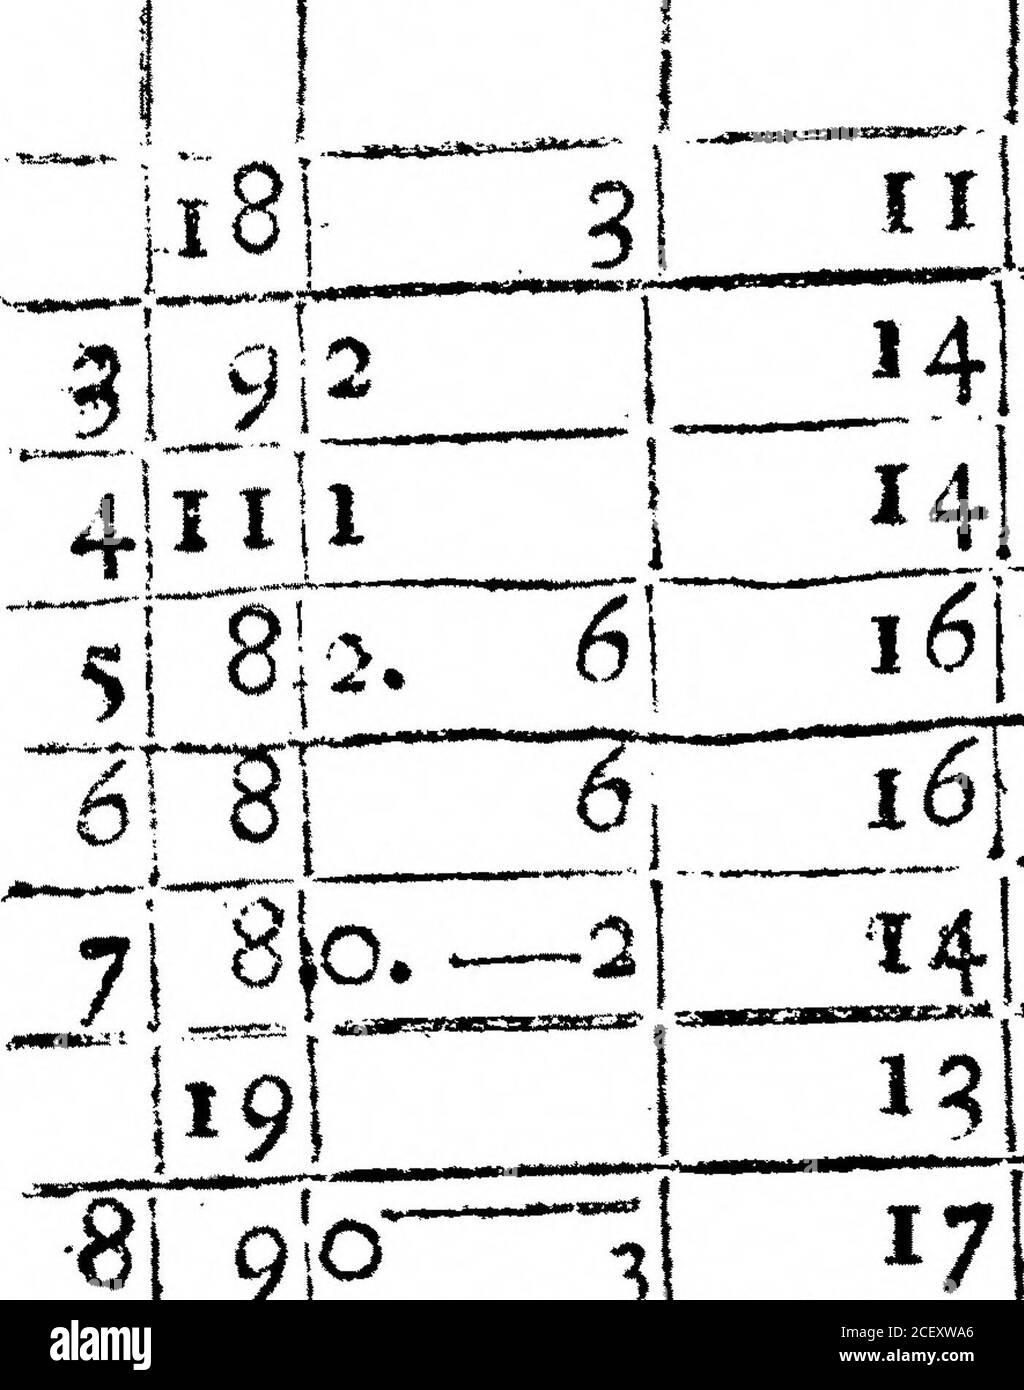 . A Register of the Weather for the Year 1692, Kept at Oates in Essex. By Mr John Locke. iiaio. and all the day I before Rain. ammmmmm MMMpMyMMMW IIIOI2. 2 8- 29  N E 2J0ondy. In the Ckumber^ on the South firh of the Honfe.. ^L T T IS* f 12 29 NW2 ??? ??.il--l-naHMK^g,*^—«, 27 ??IMIHT1 « ? <111 -~ 1 ^ I9i 5 [N E 2(Fair. 13 !I7 0 0 *- **T 10 I. 0 19I 12 N E 2-Fair. ( 1919 ) D H Ther.4 15 91°; 16 16 O- Bar. Hyg. Wind. Weather. May, 1592. *9i NEi Rain a little. 13 £7 18 19 o 17 13 N E 1 E 20  9 Stock Photo